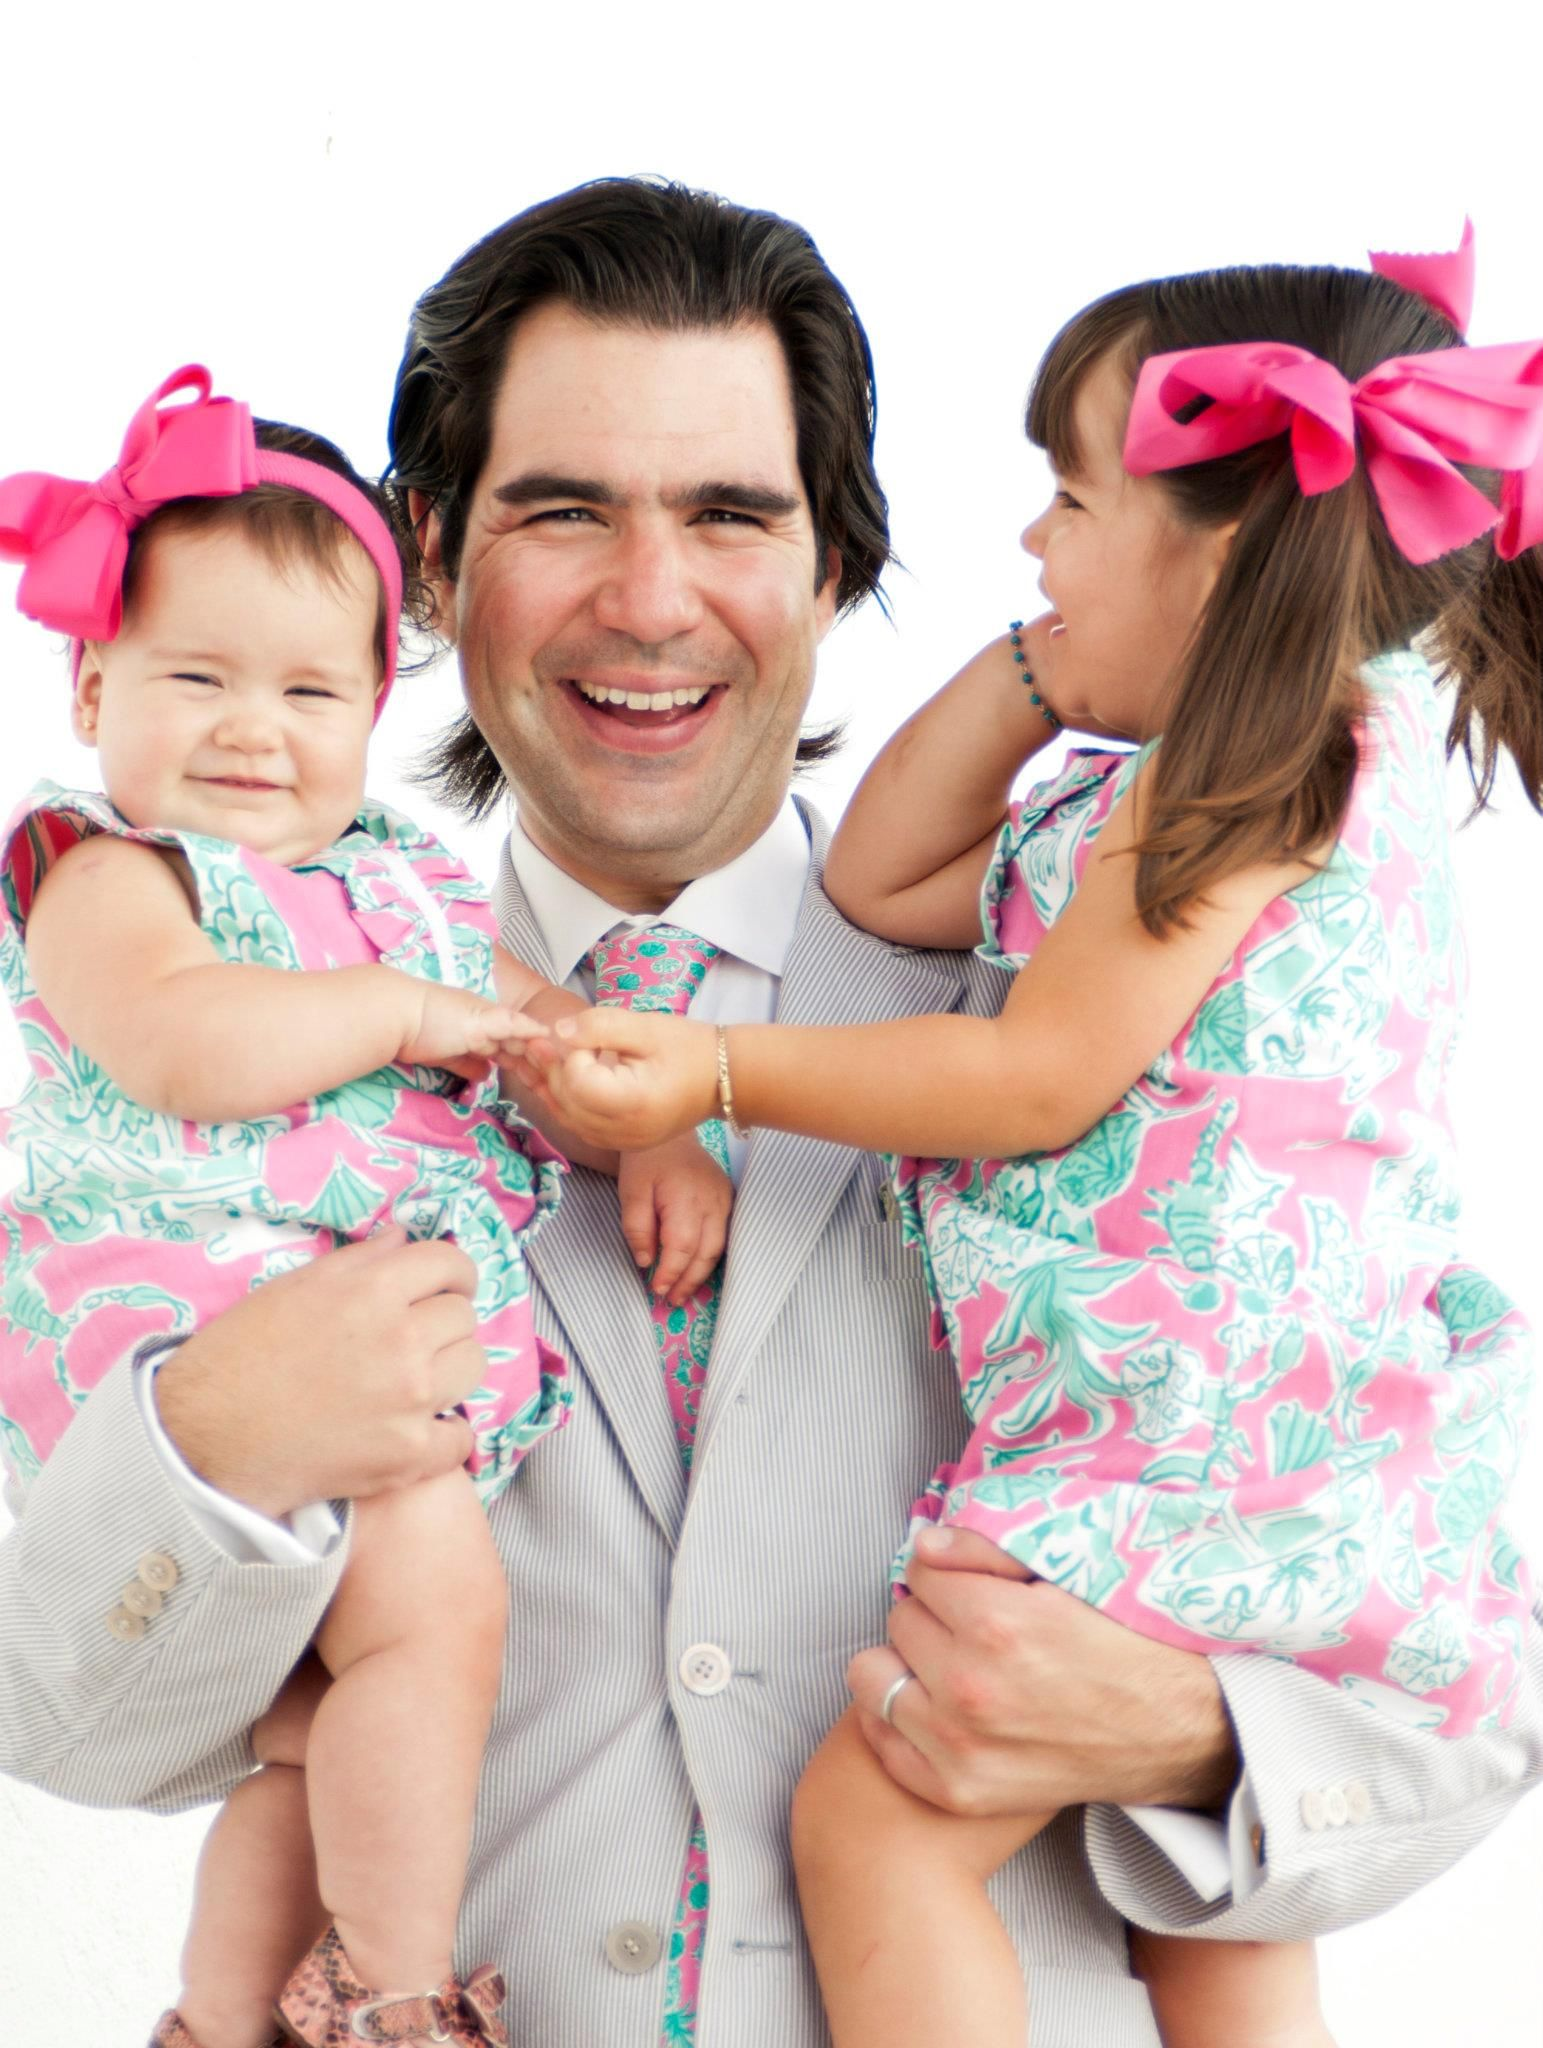 a54973fcd07ded Girls in Lilly Pulitzer dresses, Dad matching in a Lilly Pulitzer tie. So  adorable!